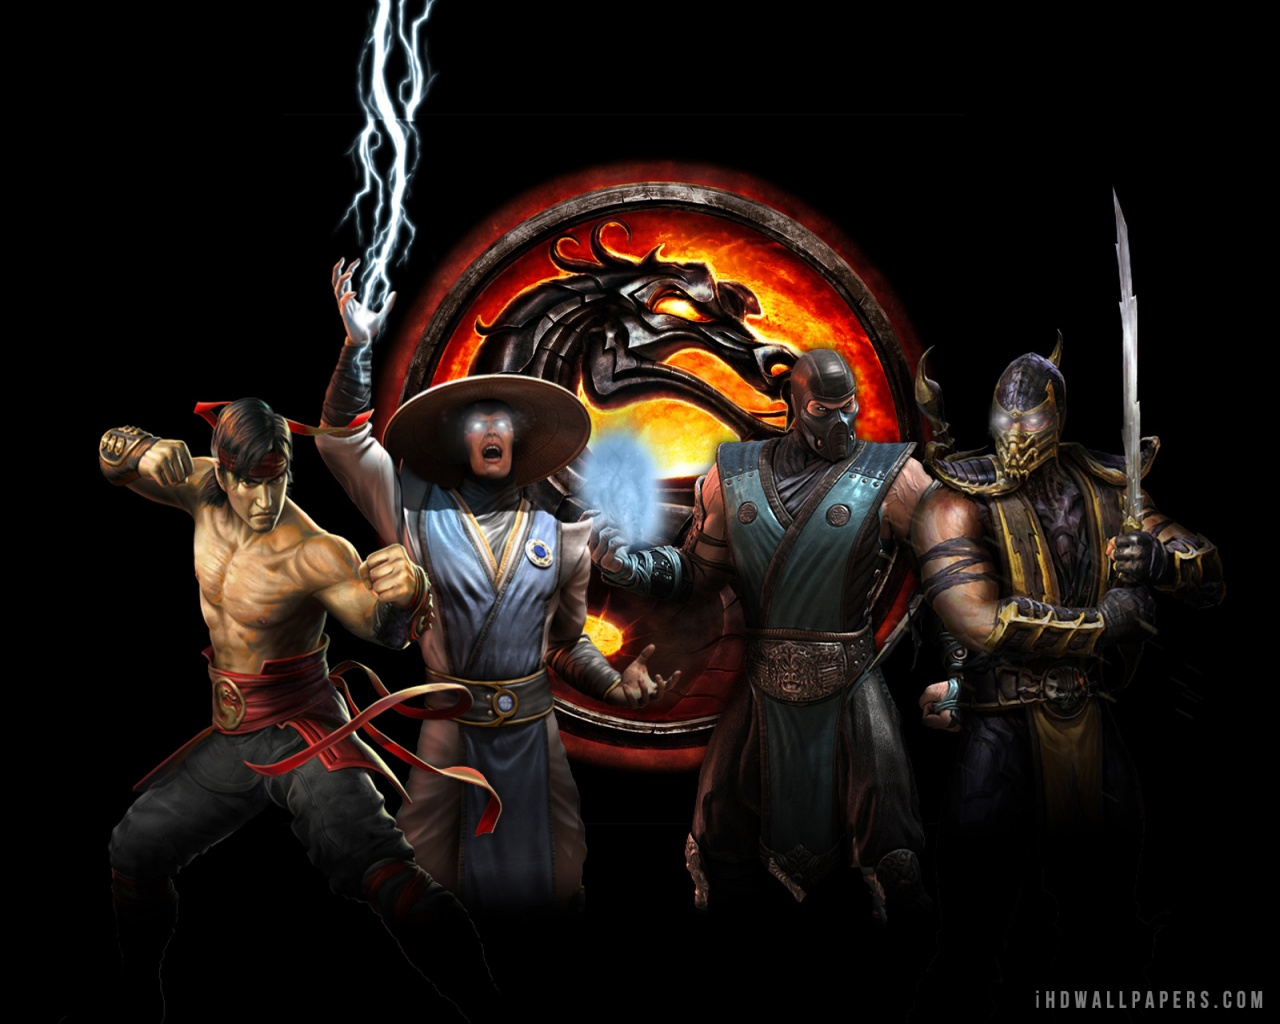 Mortal Kombat HD Wallpaper   iHD Wallpapers 1280x1024